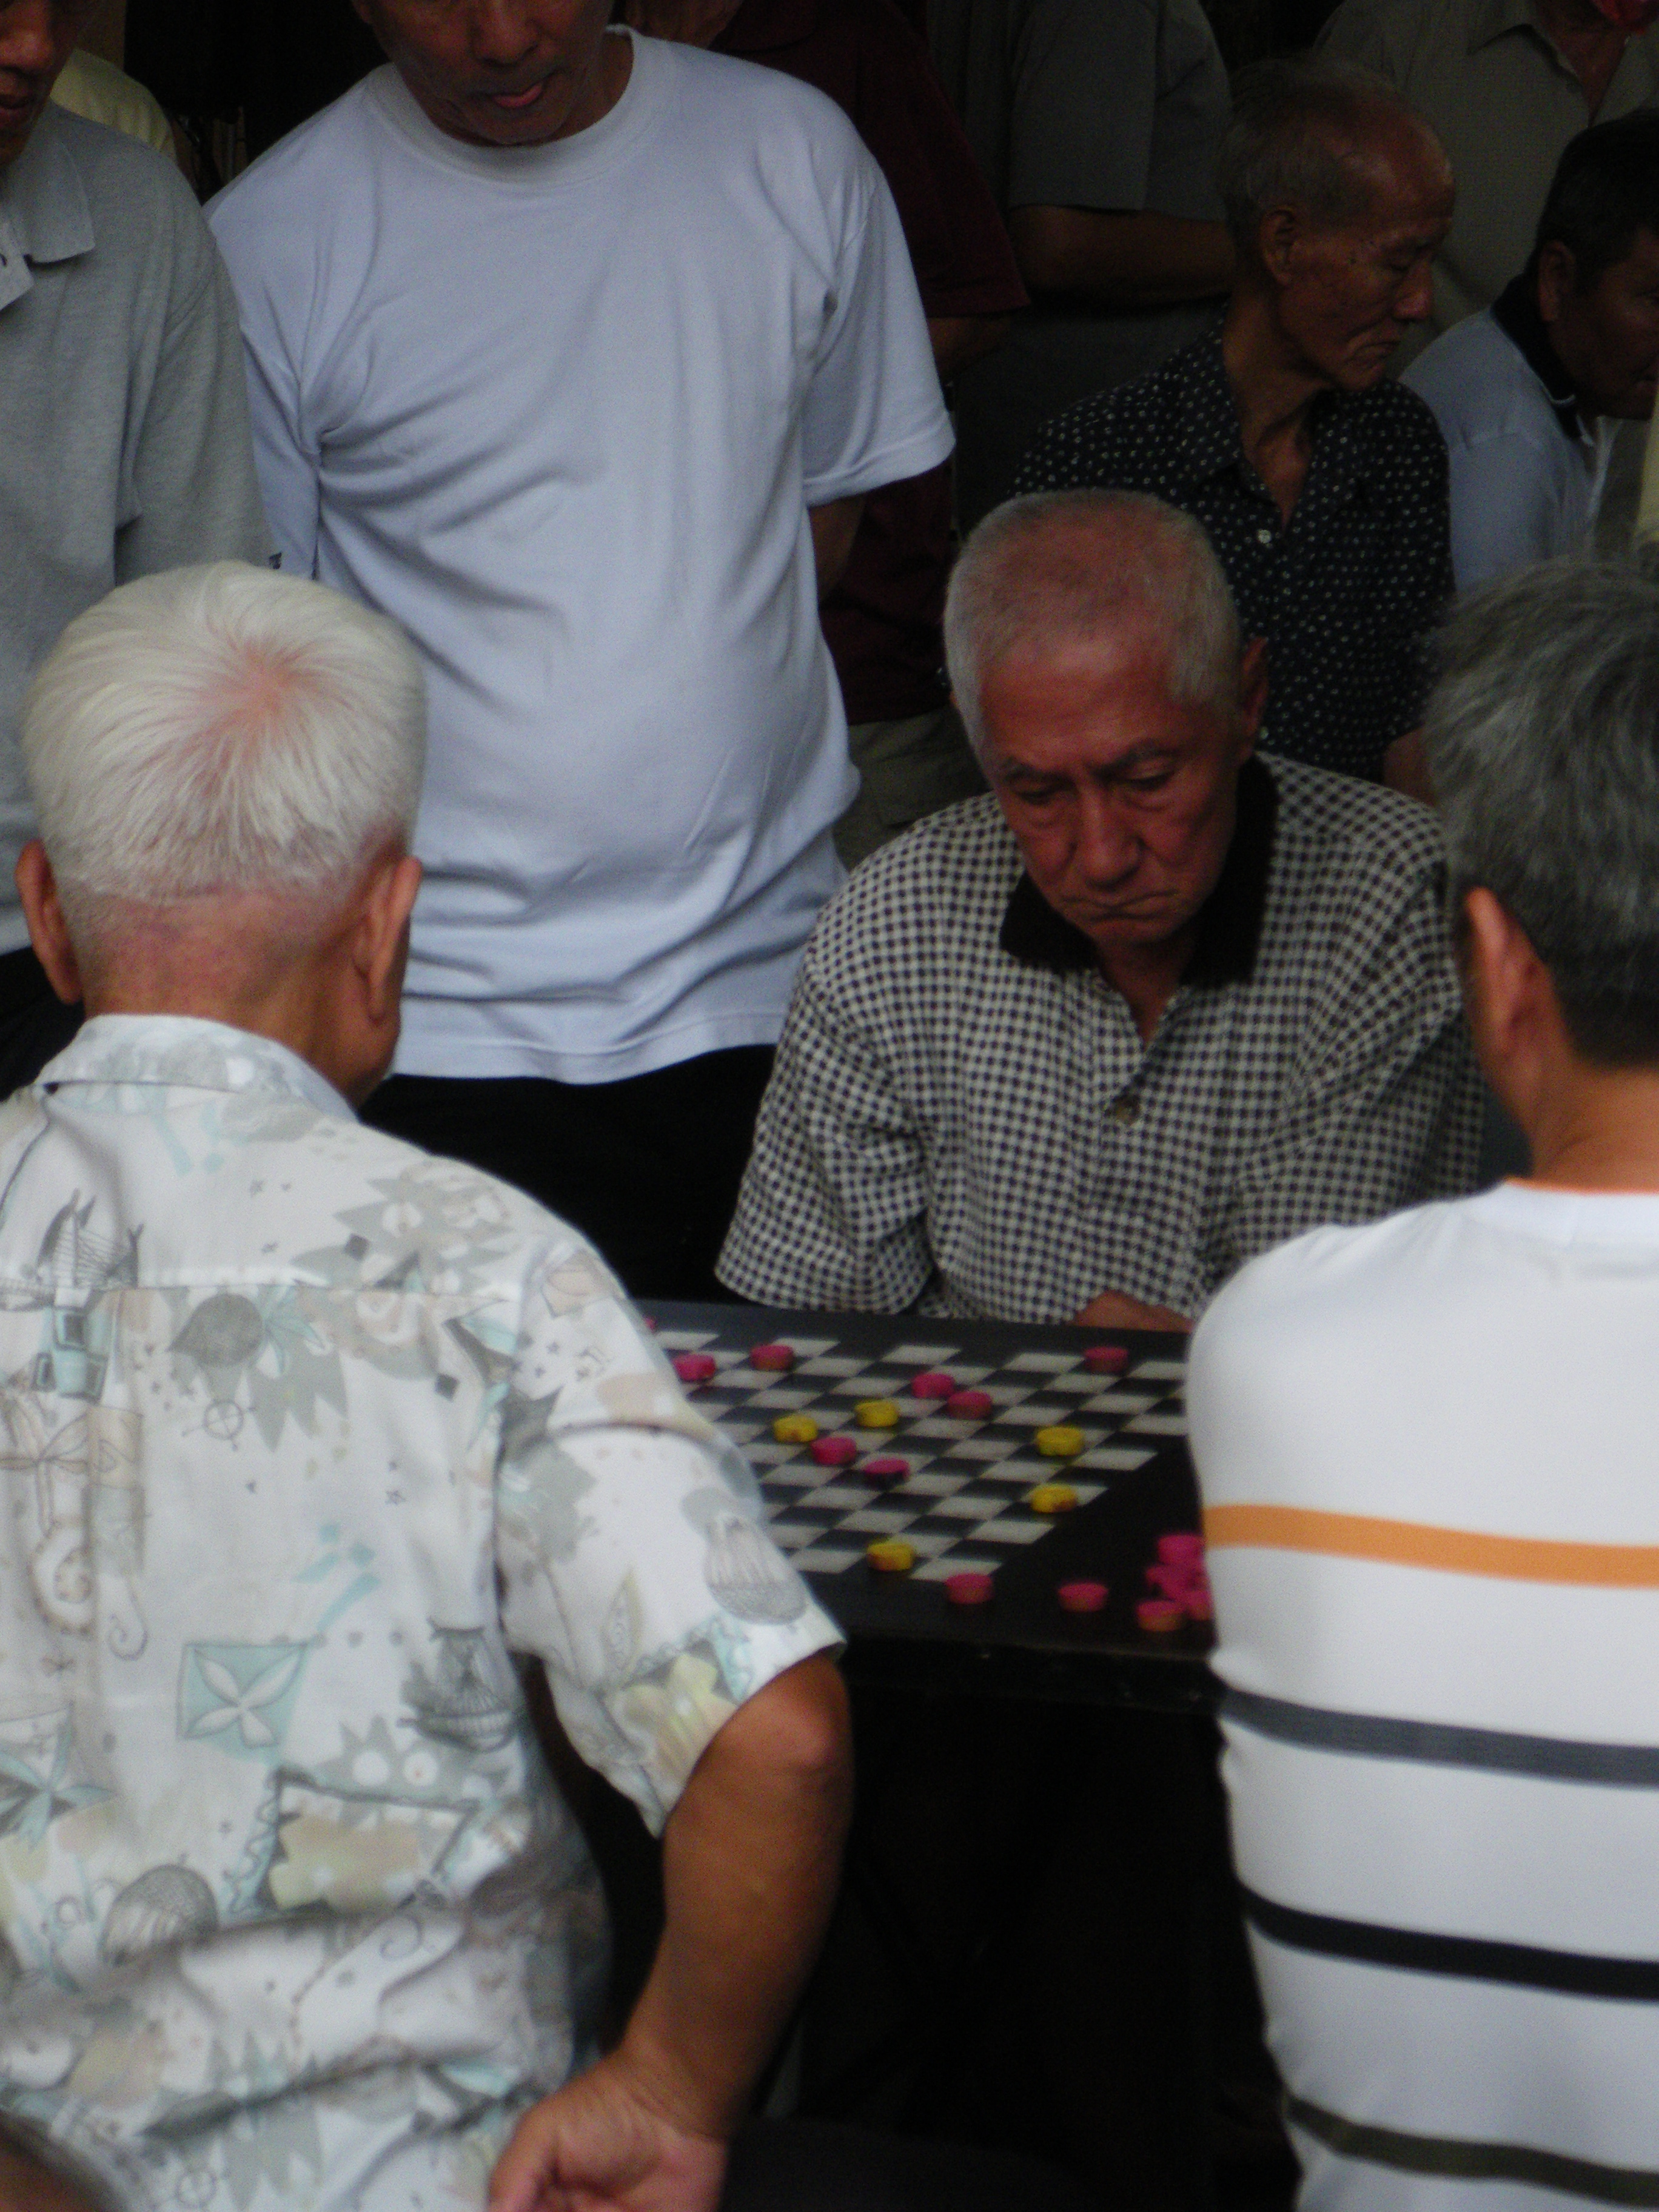 Men playing checkers, Singapore